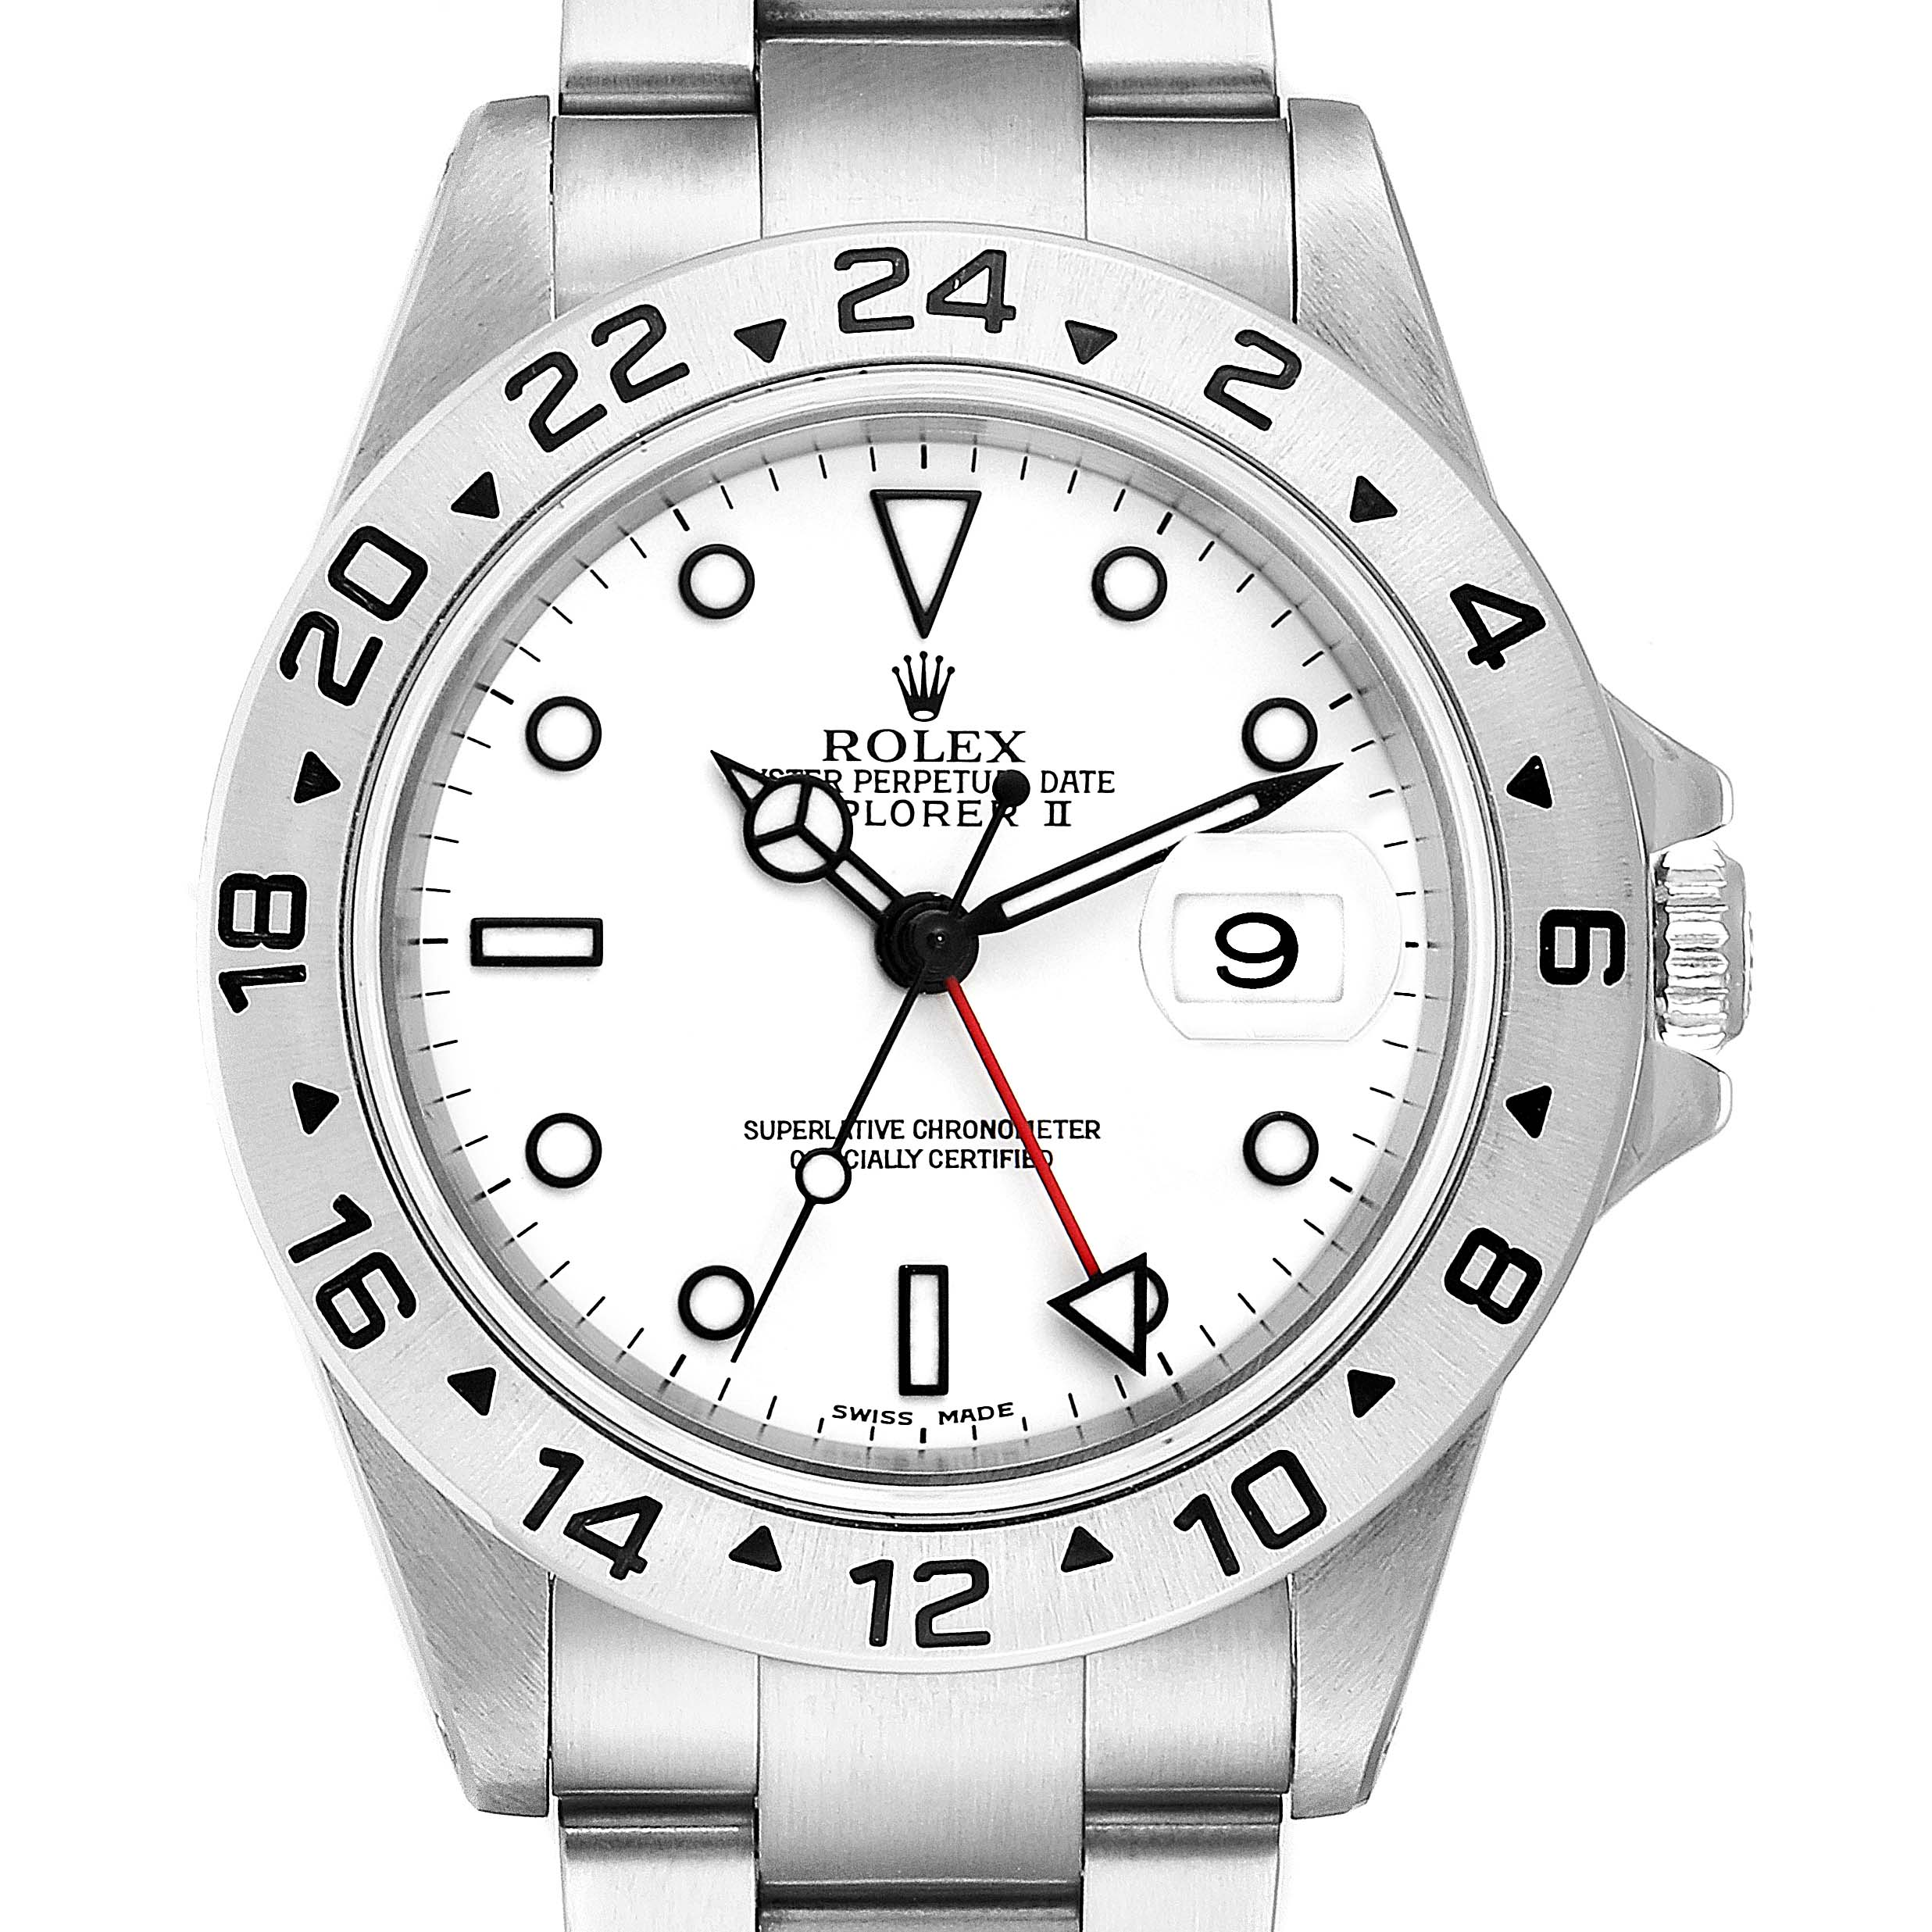 Rolex Explorer II White Dial Stainless Steel Mens Watch 16570